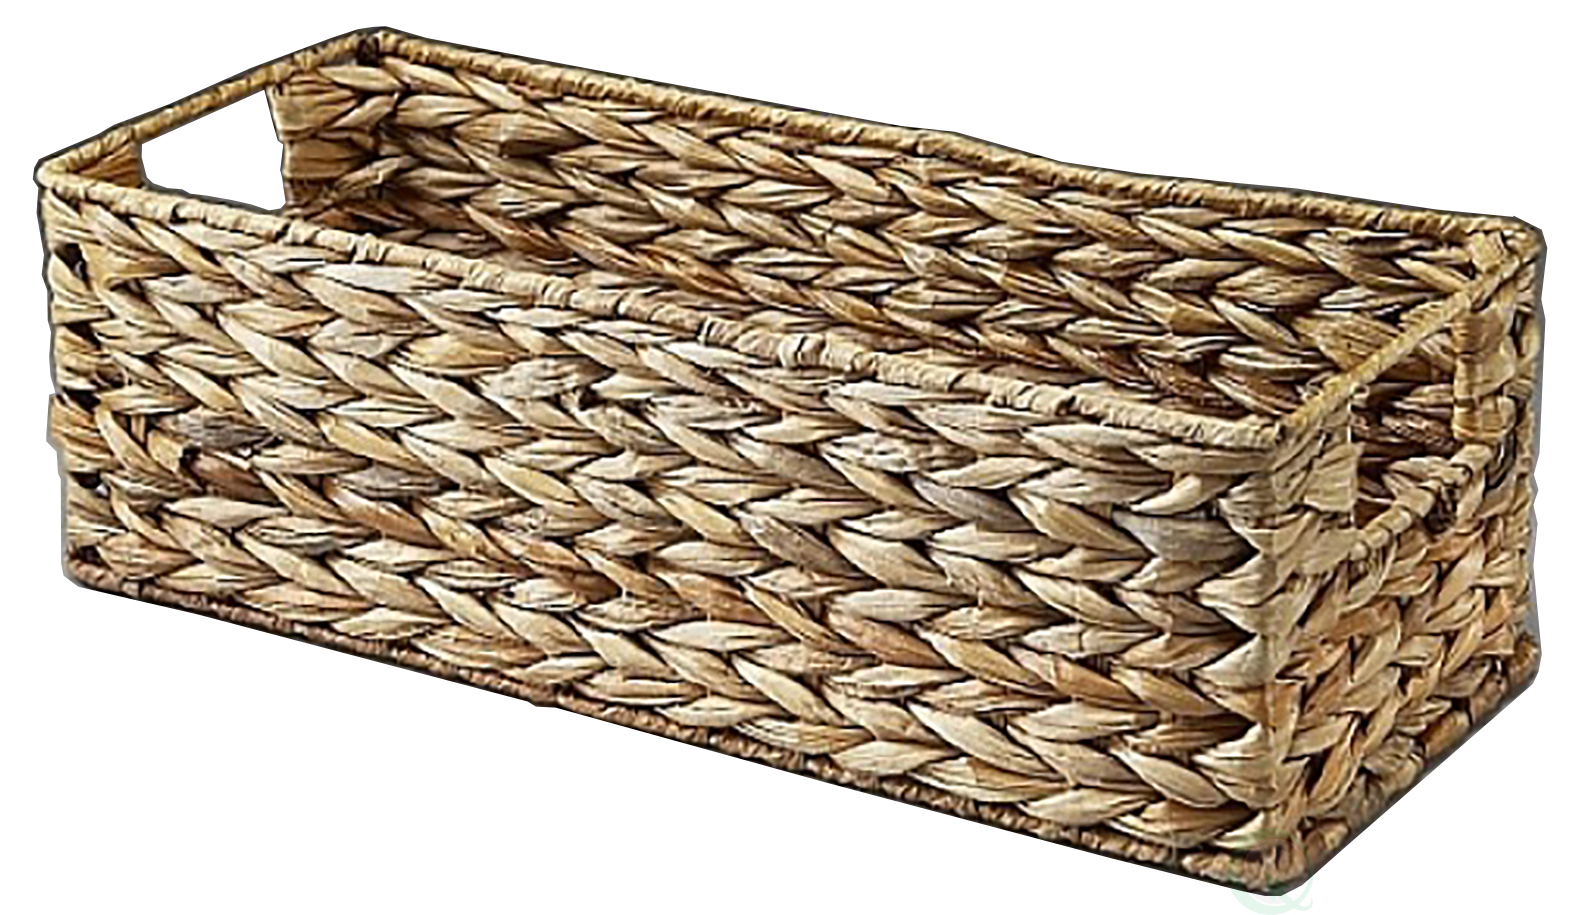 Woven Rectangular Storage Basket With Cut Out Handles